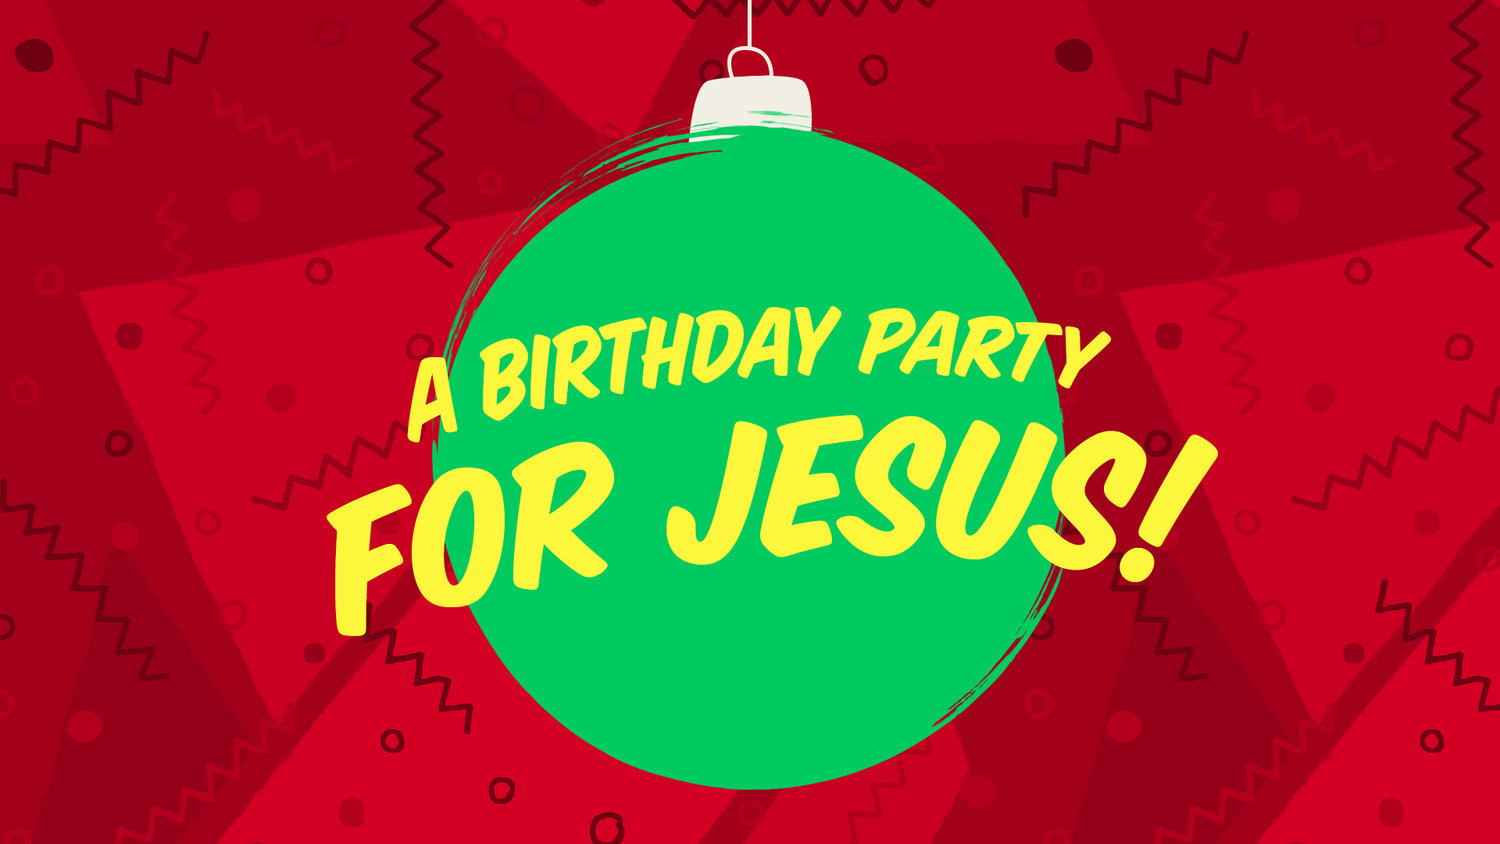 Renovation Church Birthday Party For Jesus